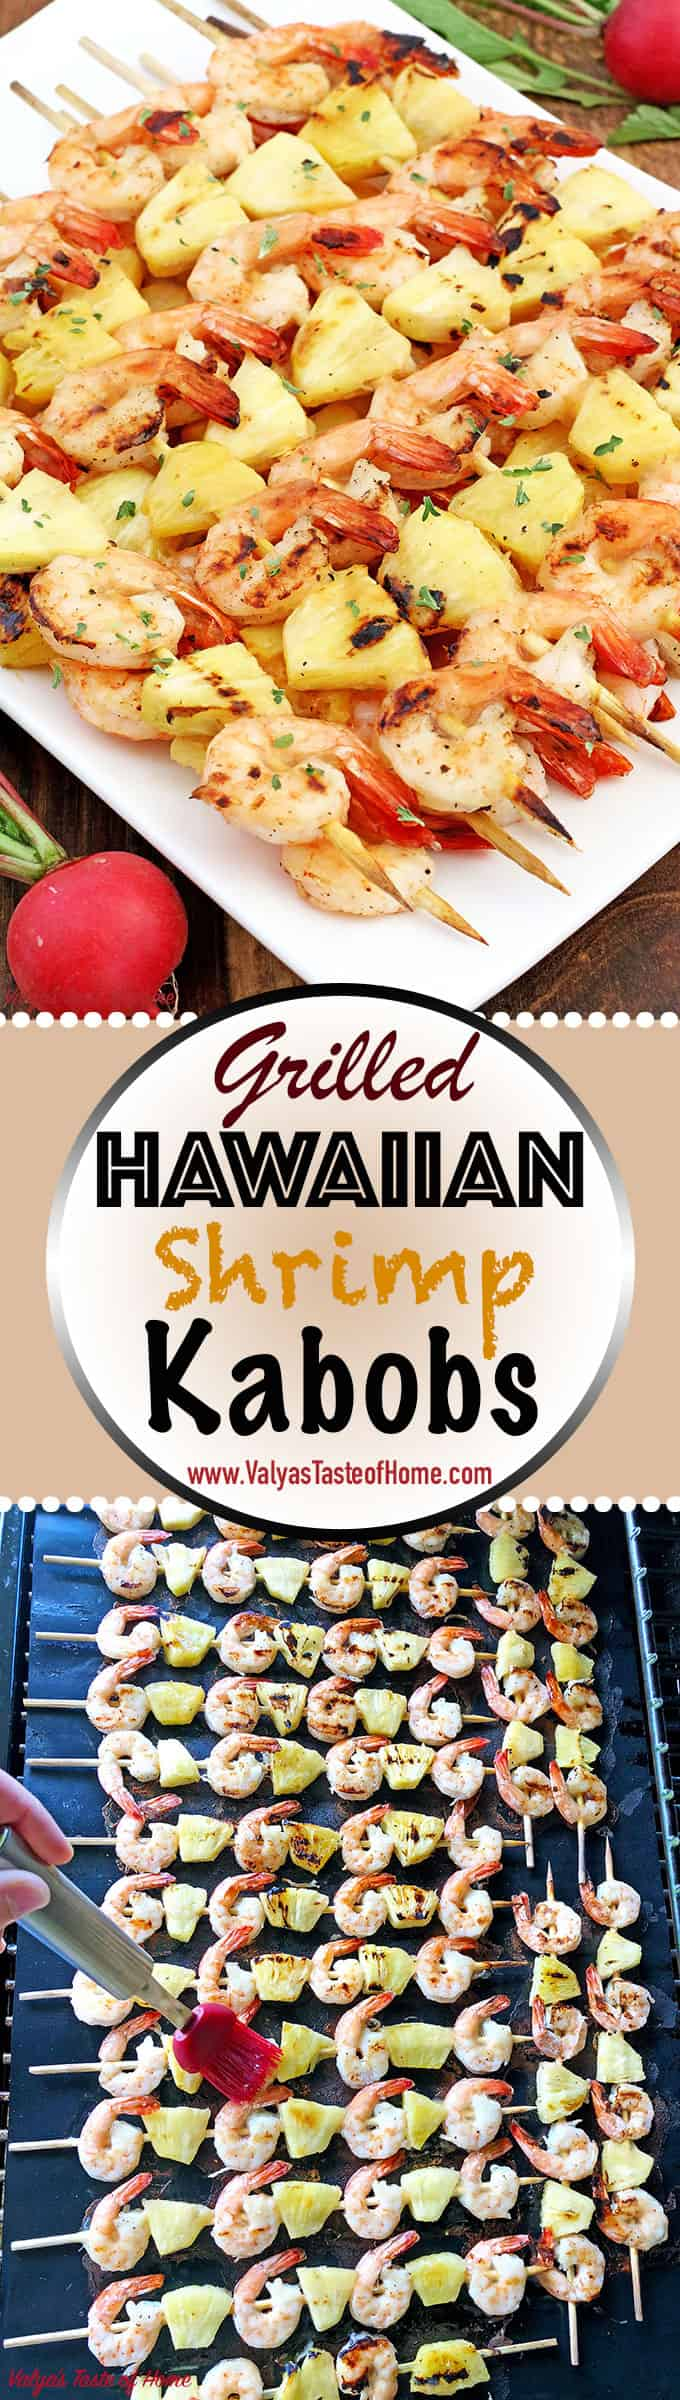 This Grilled Hawaiian Shrimp Kabobs Recipe is easy to put together. They require very few ingredients and work, but their presence can make anyone drool. It's perfect for the upcoming 4th of July holiday, for the park, or your backyard family gathering.